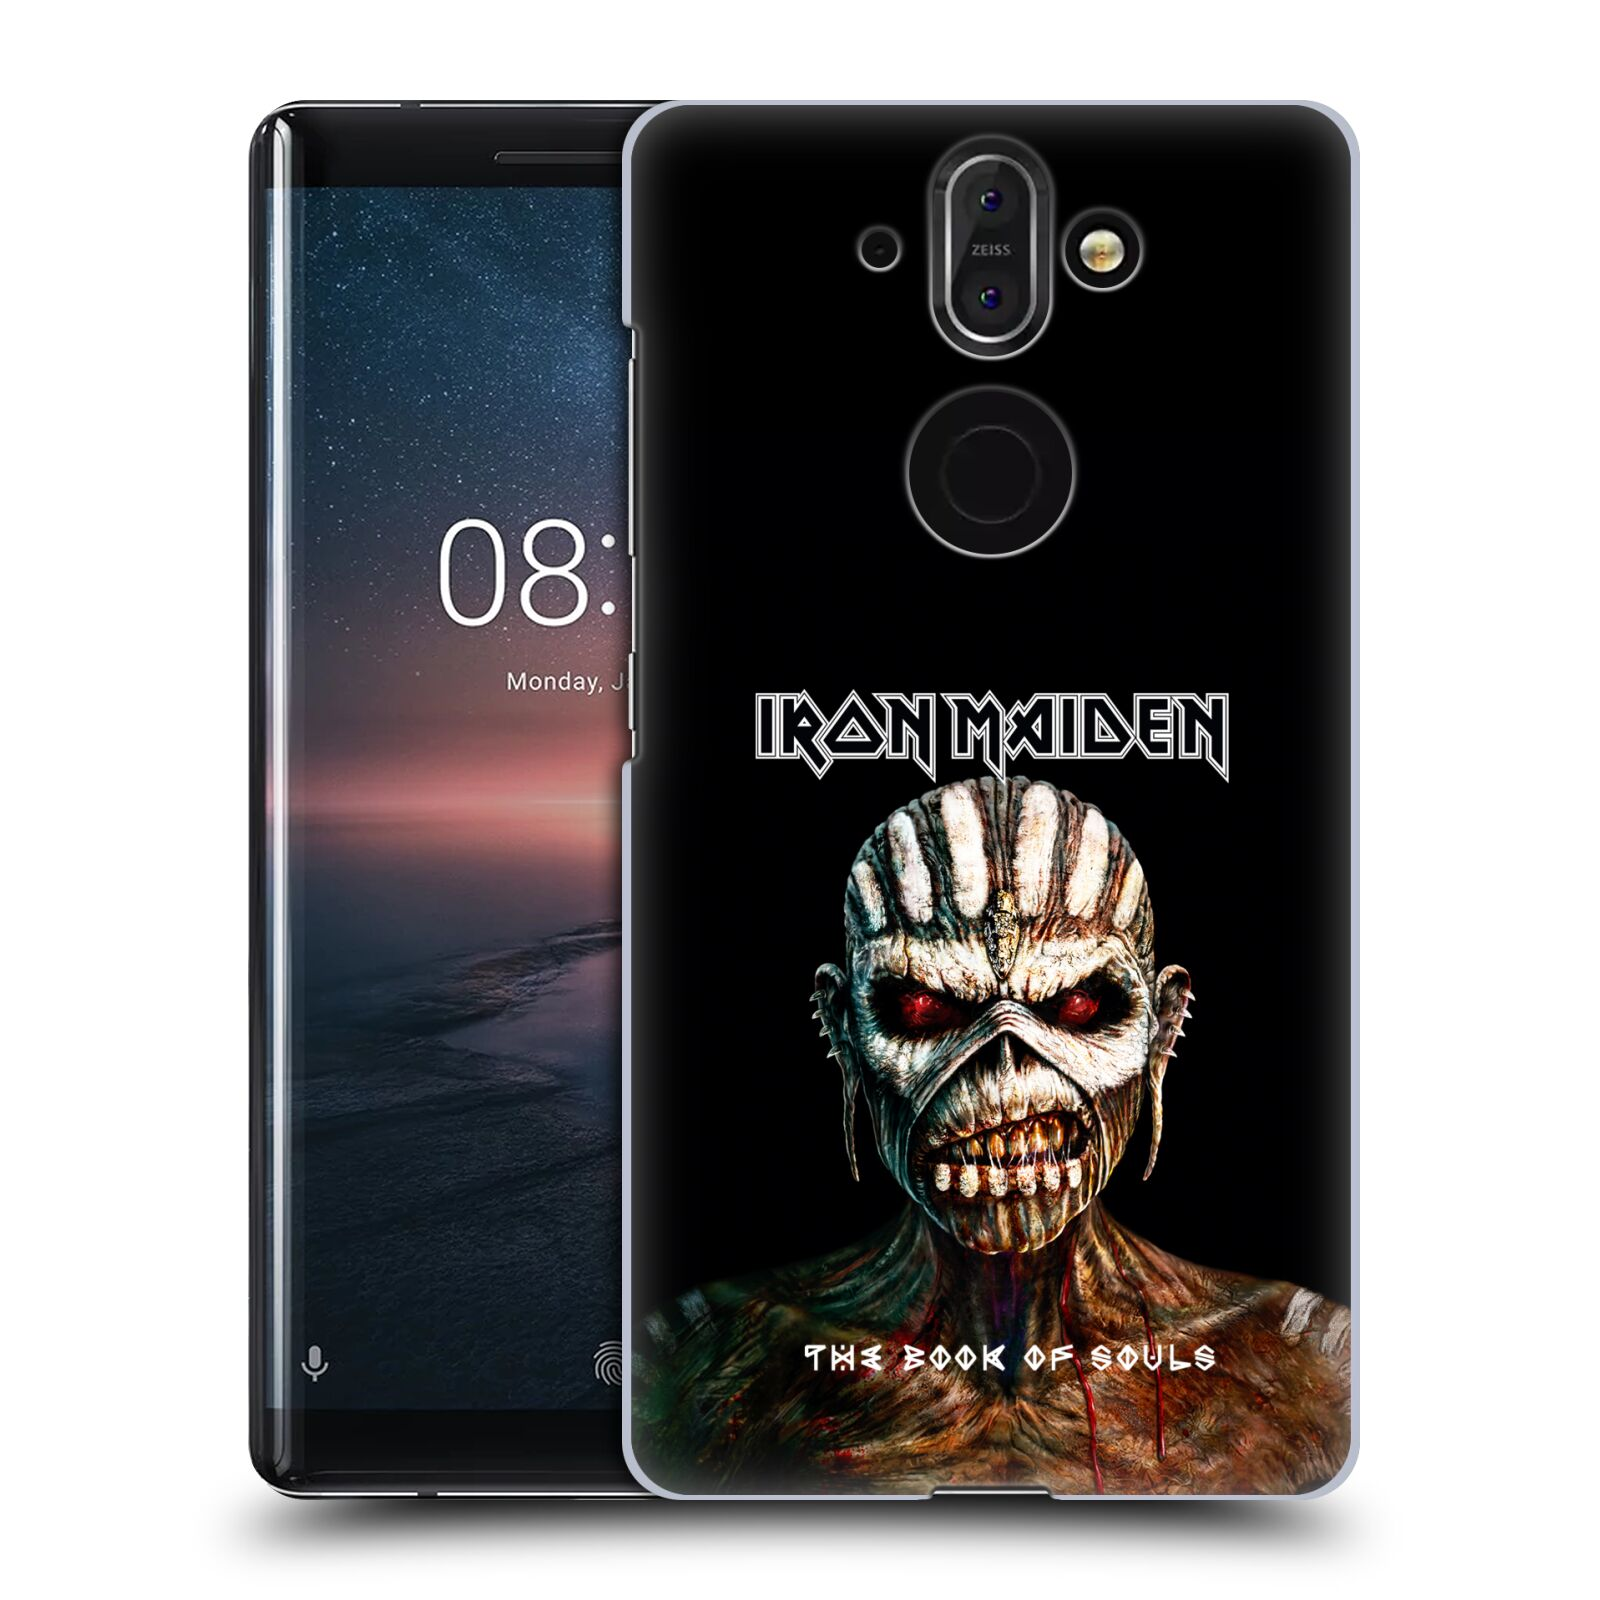 Plastové pouzdro na mobil Nokia 8 Sirocco - Head Case - Iron Maiden - The Book Of Souls